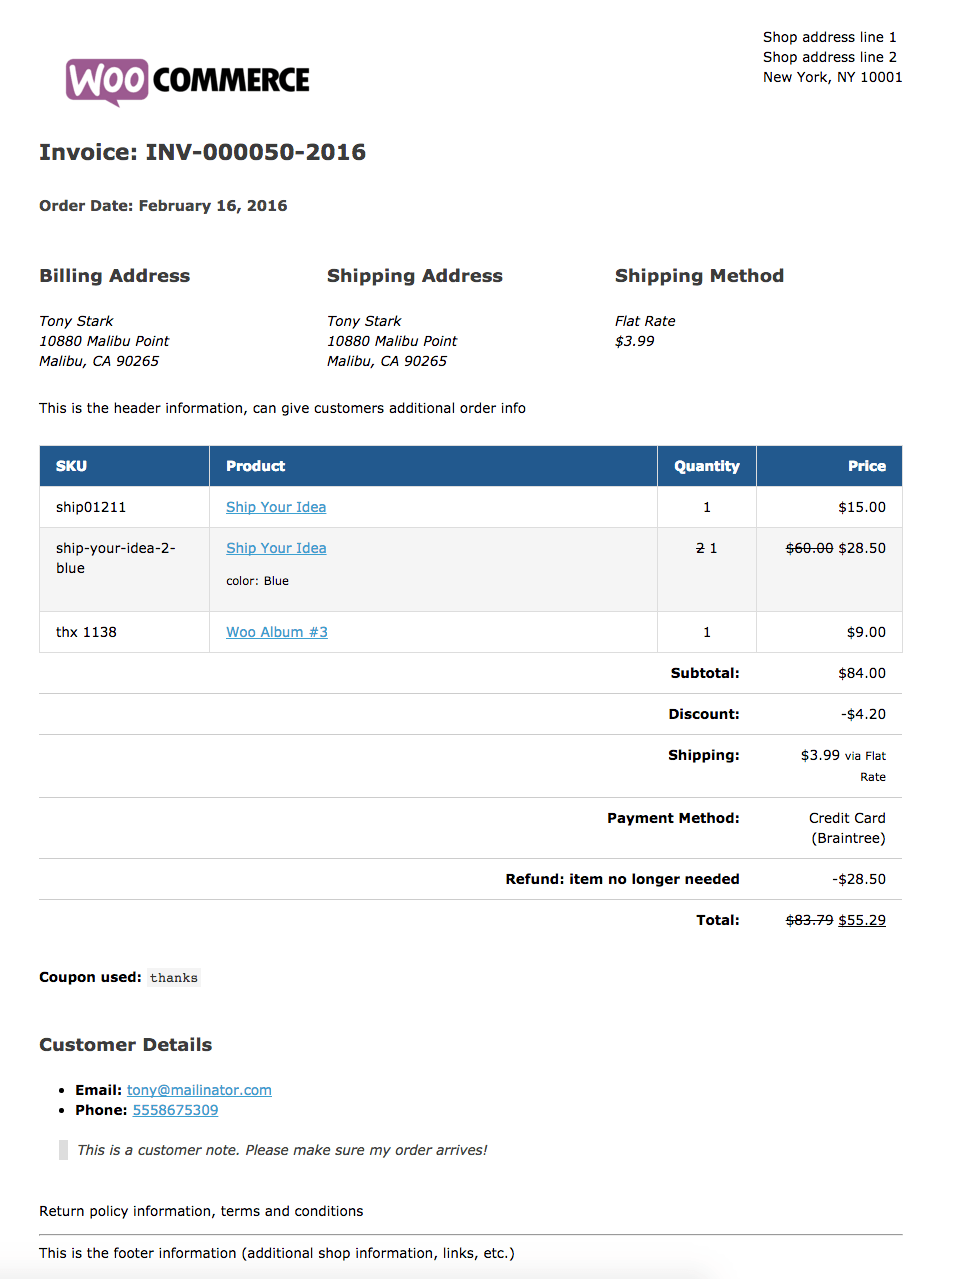 Aldiablosus  Pleasant Woocommerce Print Invoices Amp Packing Lists  Woocommerce Docs With Likable Sample Invoice With Comely Nch Software Express Invoice Also Invoice Aging In Addition Magento Invoice And Excel Invoice Software As Well As Word Invoices Additionally Paperless Invoice From Docswoocommercecom With Aldiablosus  Likable Woocommerce Print Invoices Amp Packing Lists  Woocommerce Docs With Comely Sample Invoice And Pleasant Nch Software Express Invoice Also Invoice Aging In Addition Magento Invoice From Docswoocommercecom